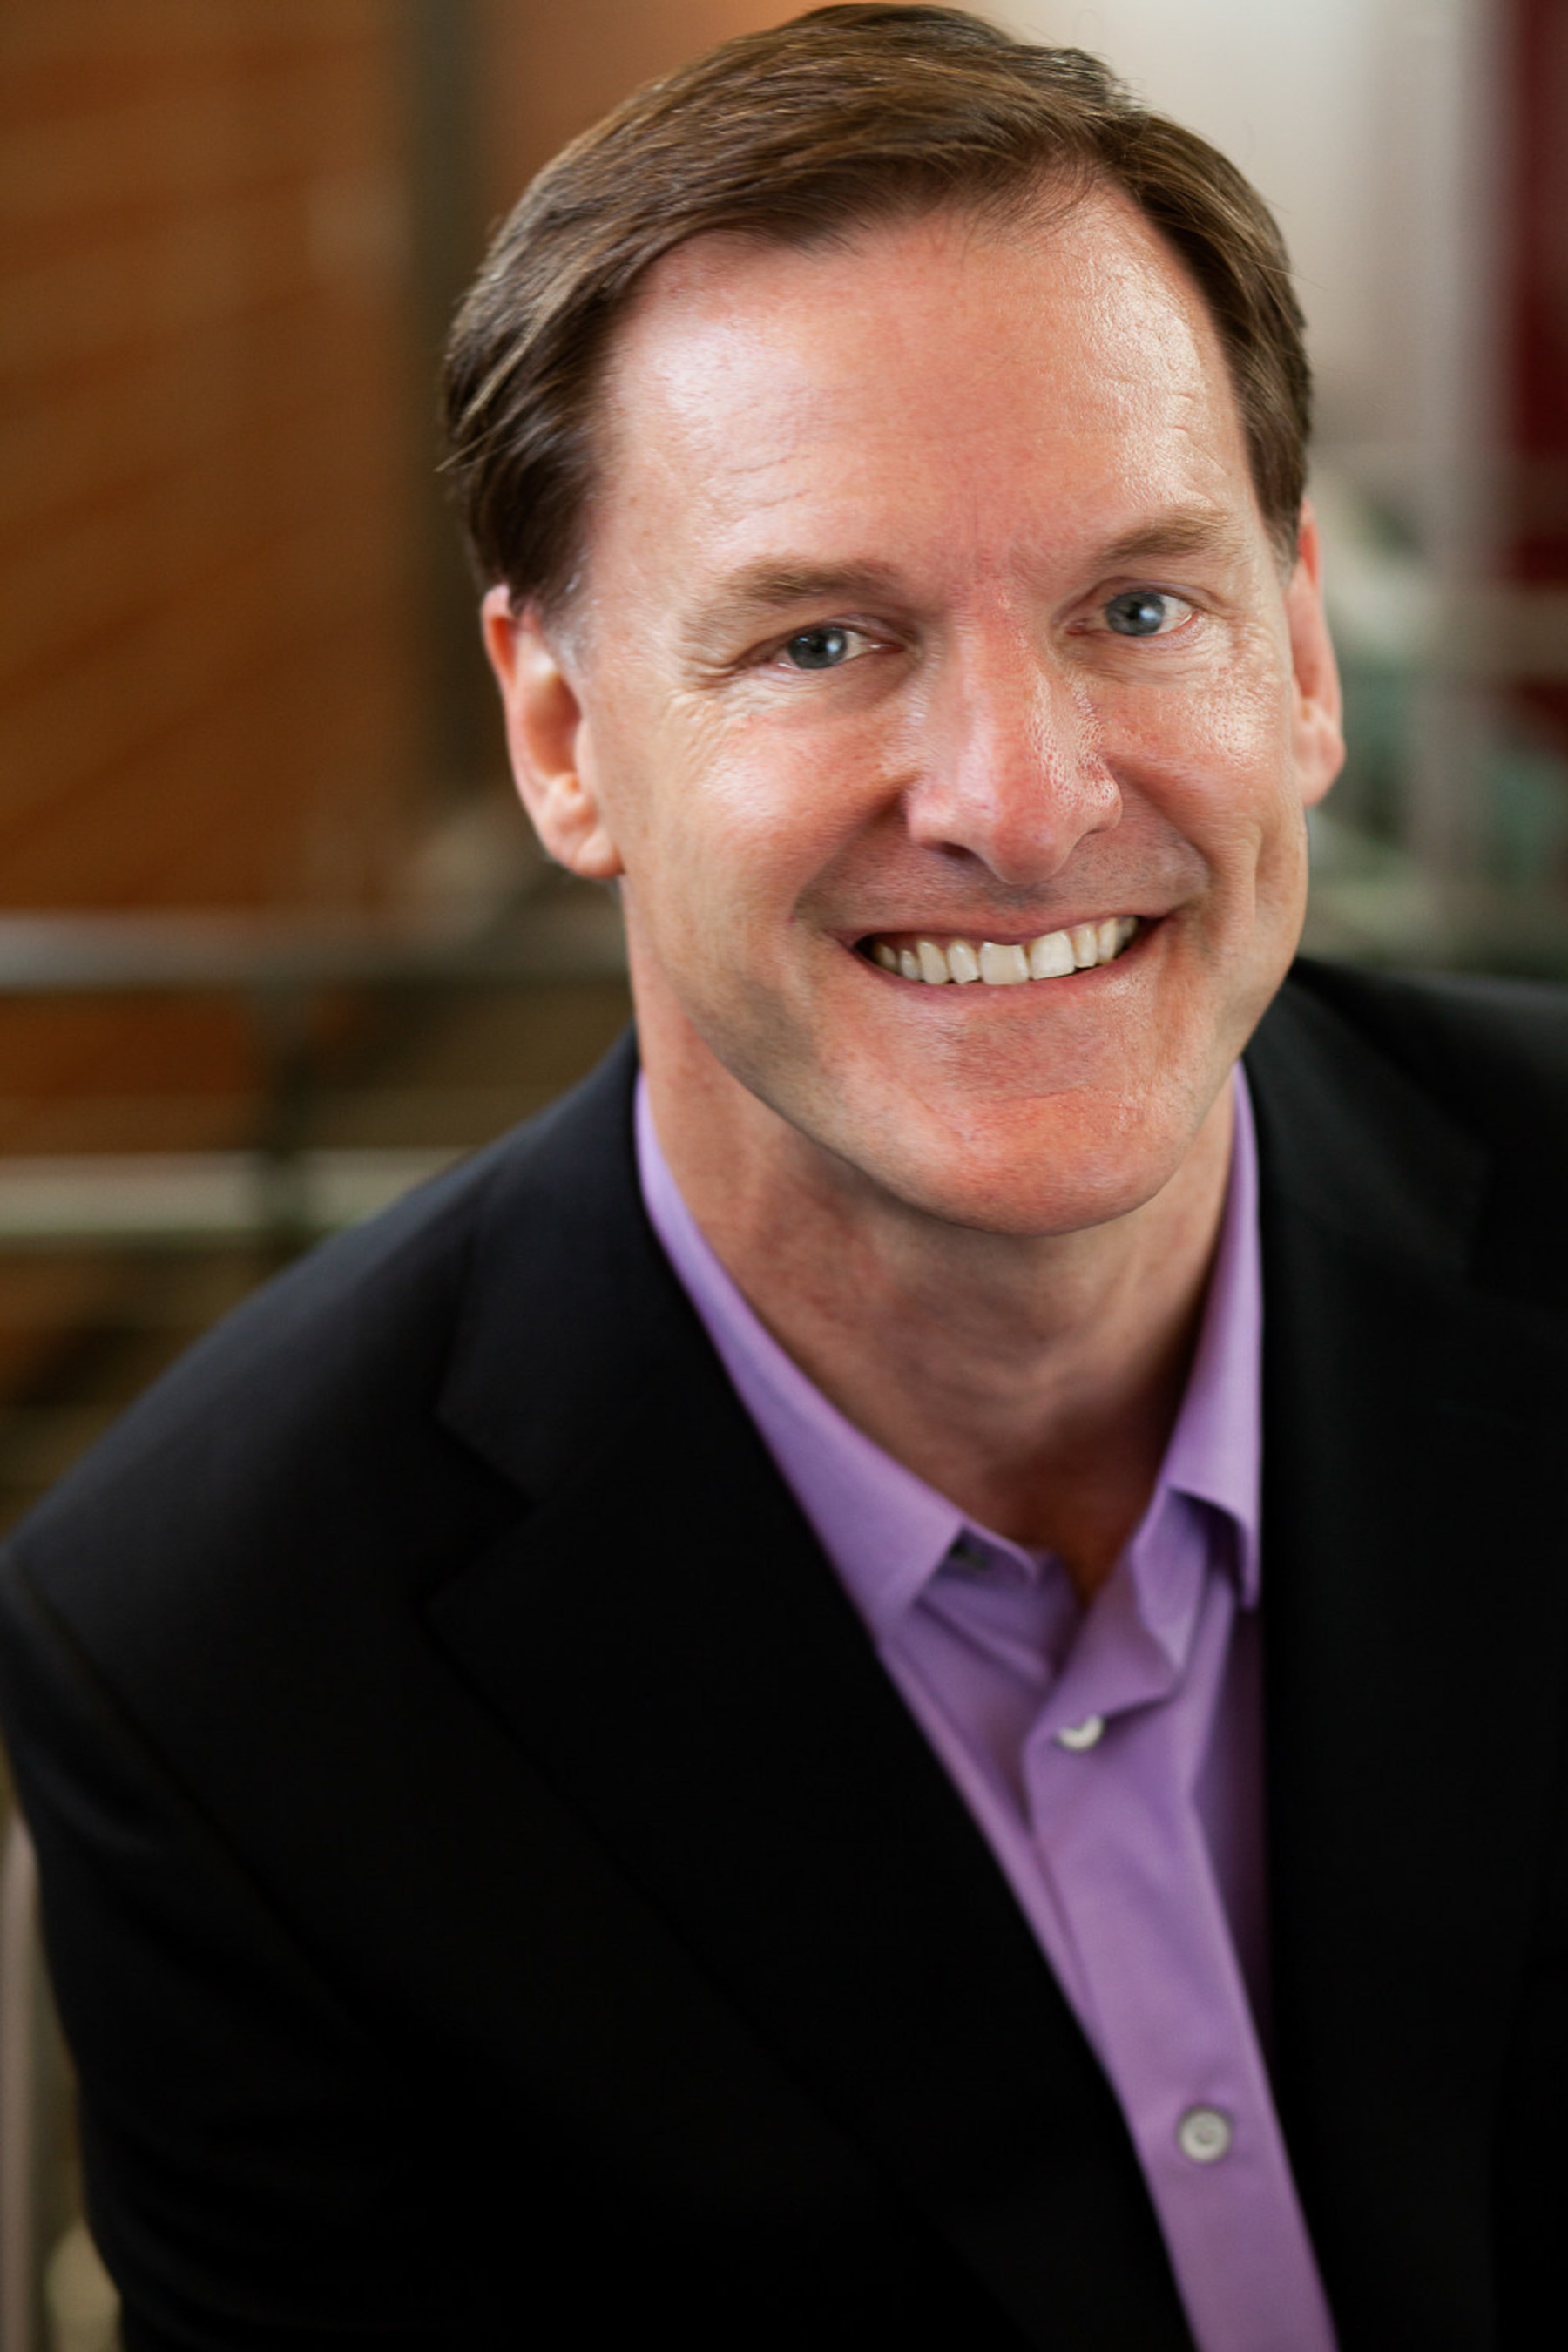 Jeff Dossett, GOOD's new chief revenue officer, will lead global sales, marketing and business development for the media and strategic services company. Dossett is a seasoned media and technology executive having served in leadership roles at Porch.com, Microsoft, Yahoo!, and Demand Media